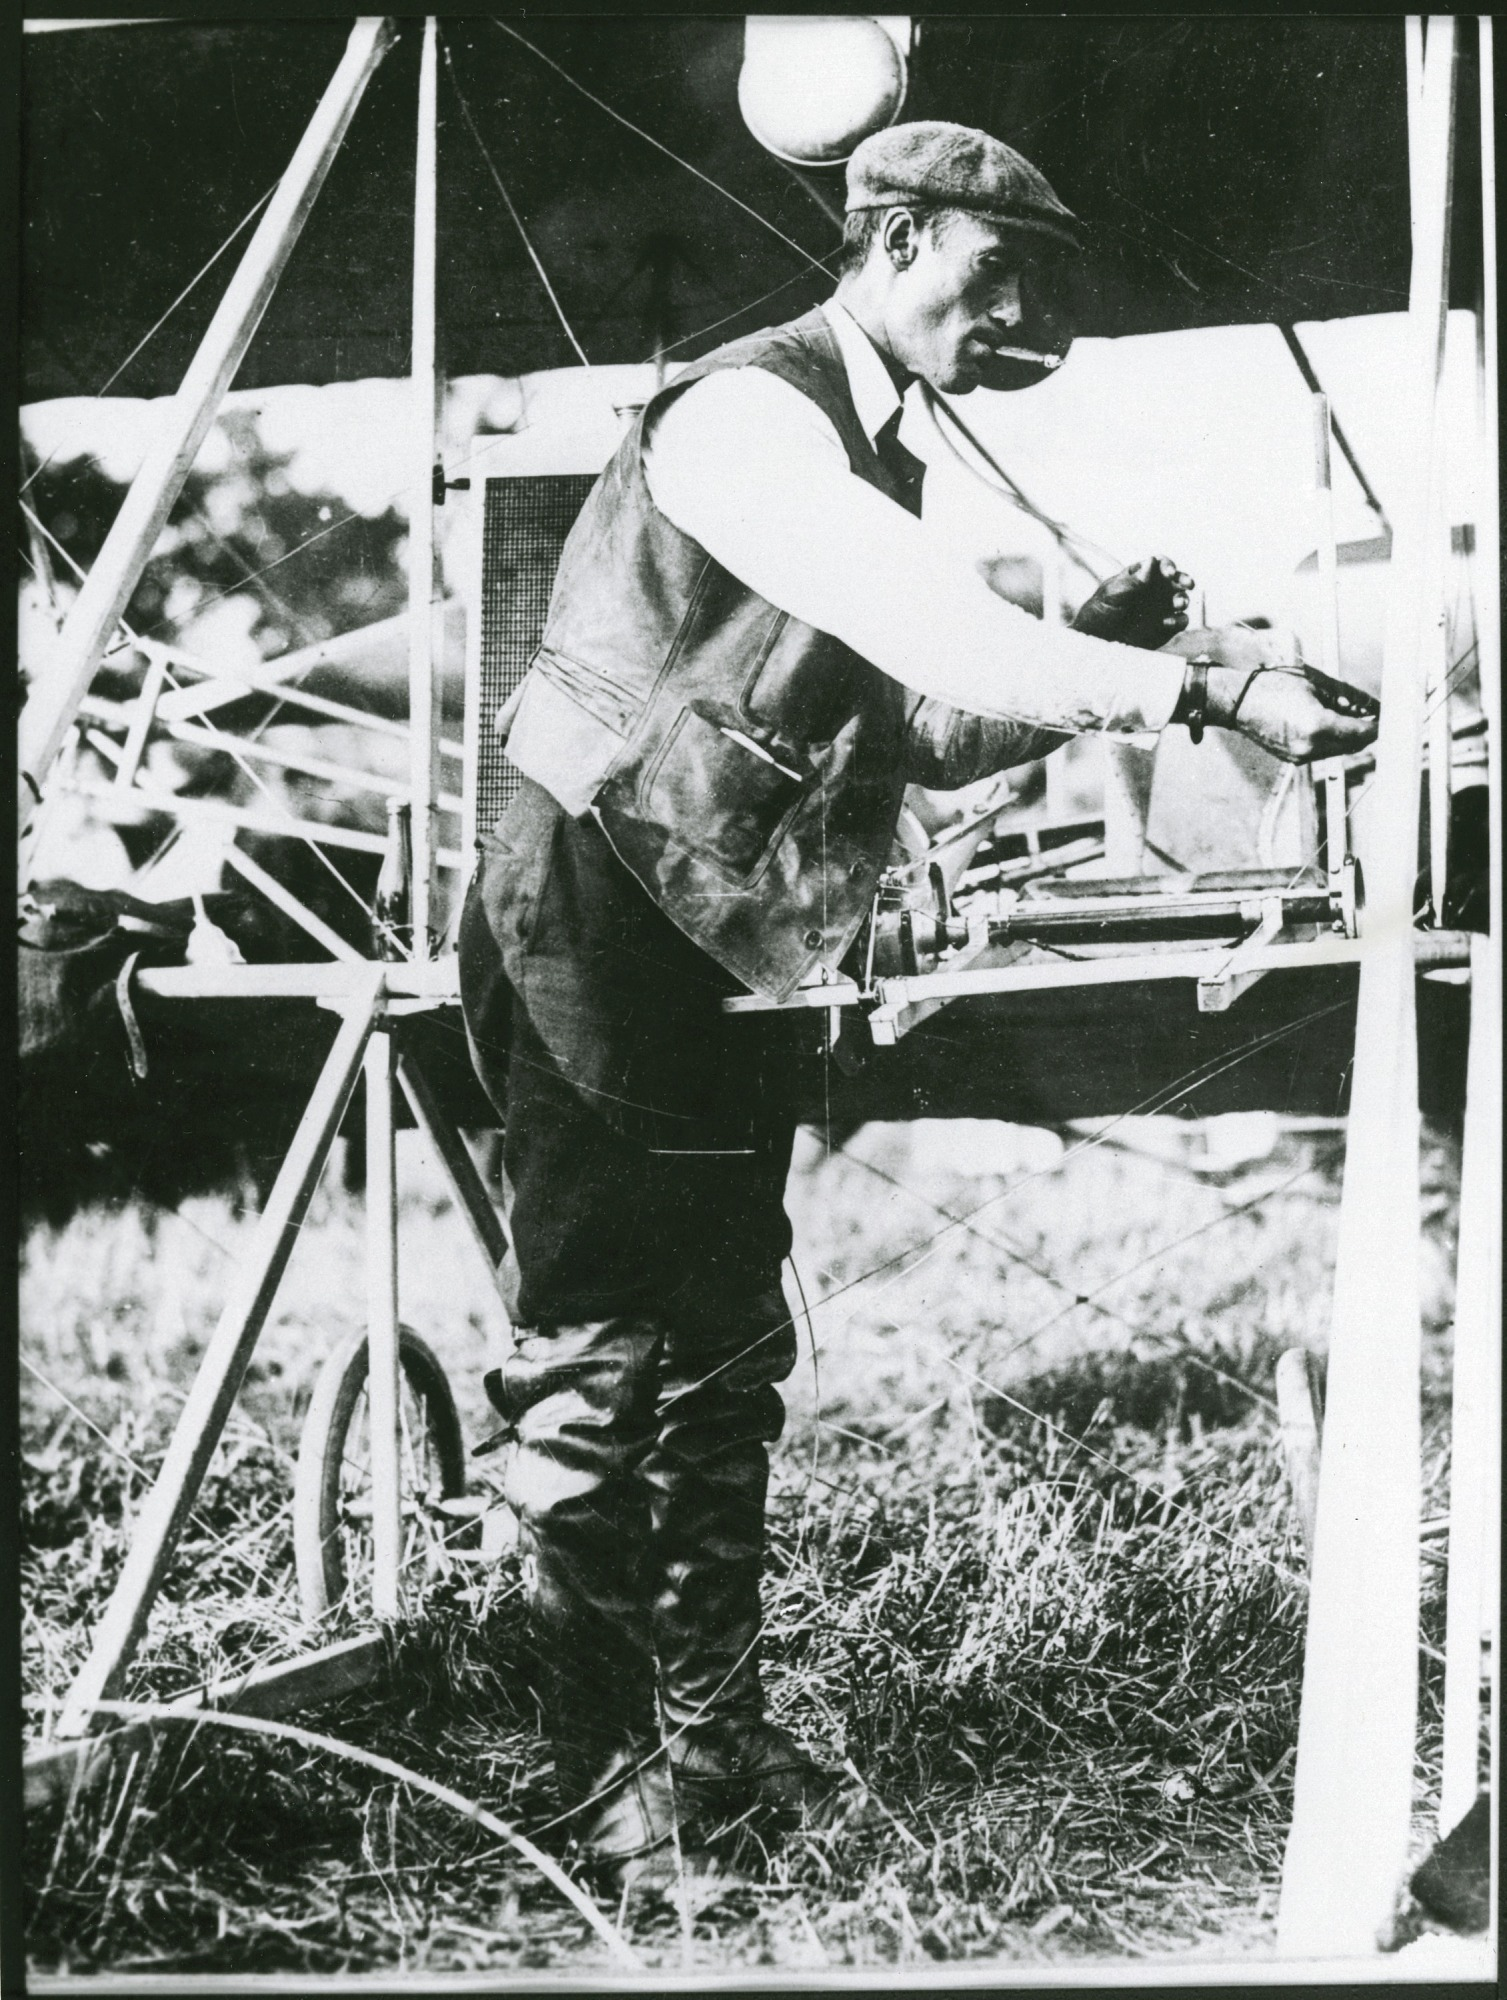 Cal Rodgers and the Vin Fiz: The First Transcontinental Flight Collection